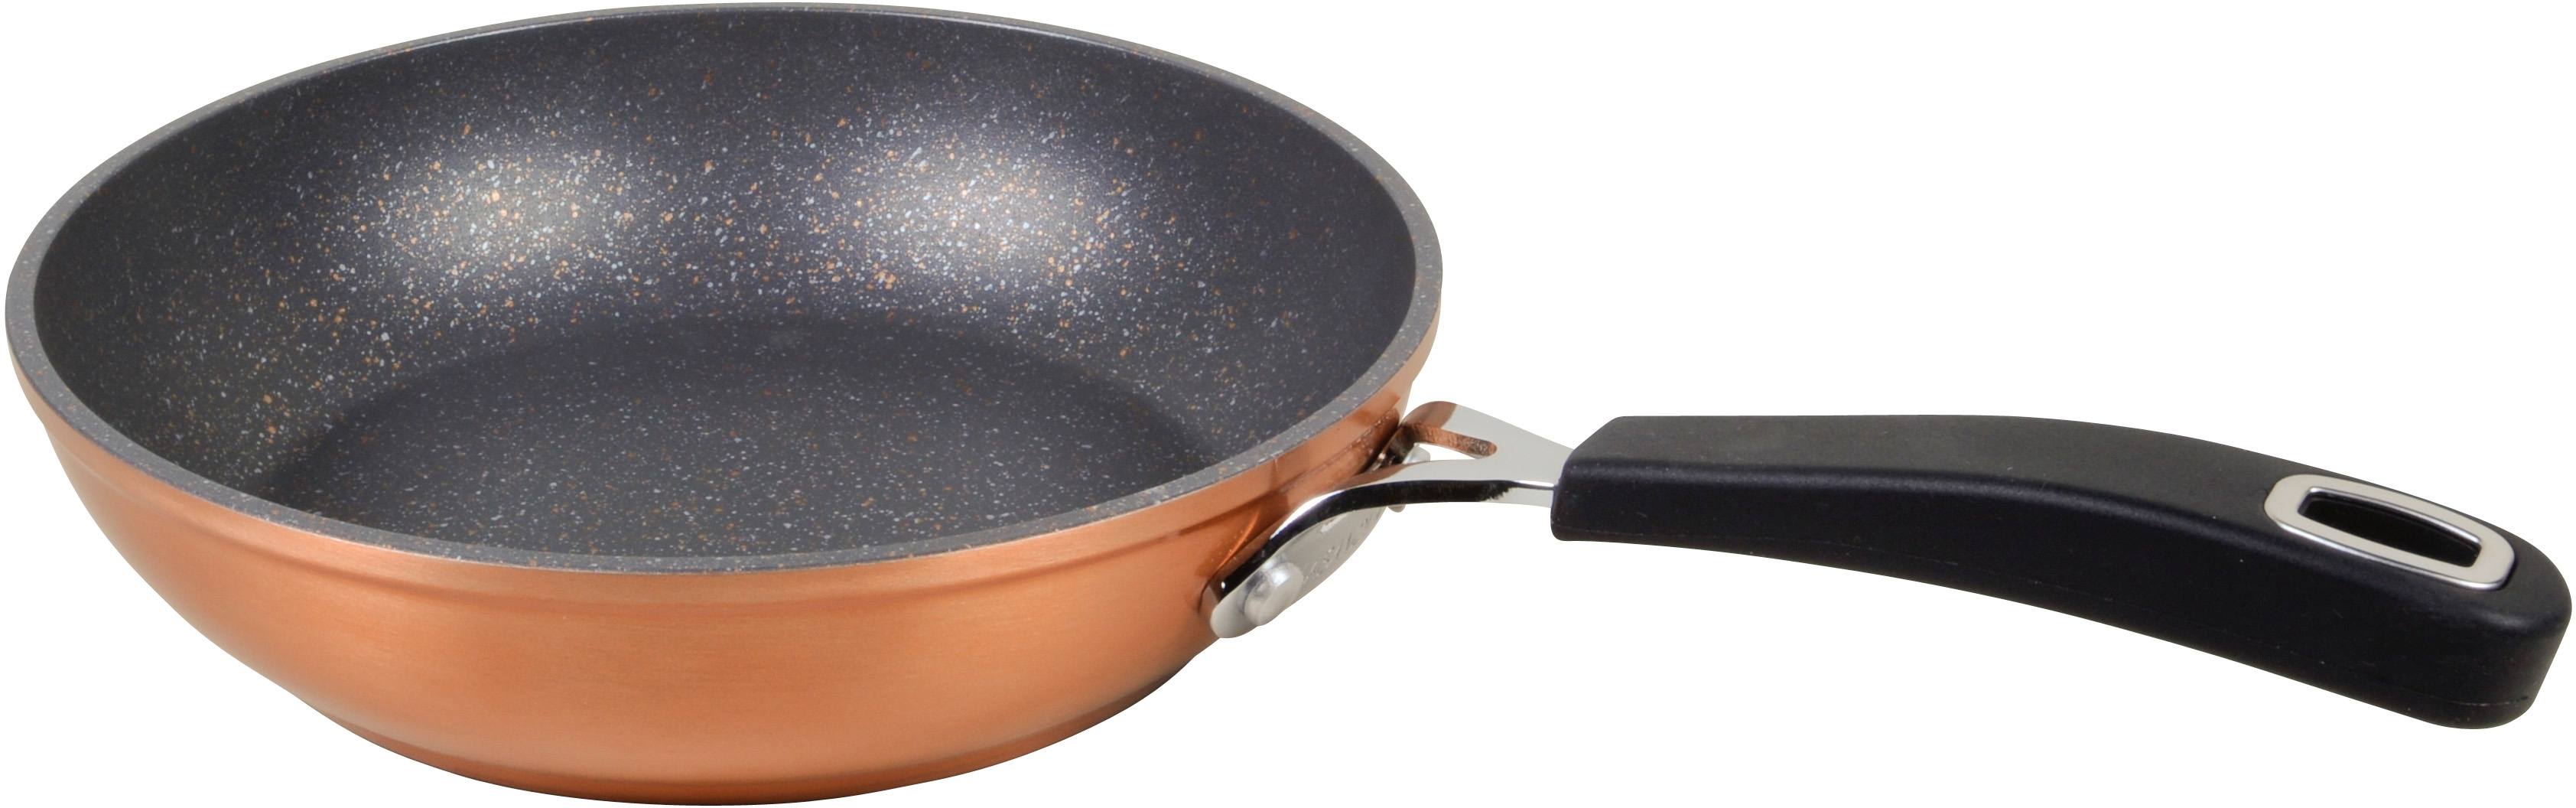 Copper chef